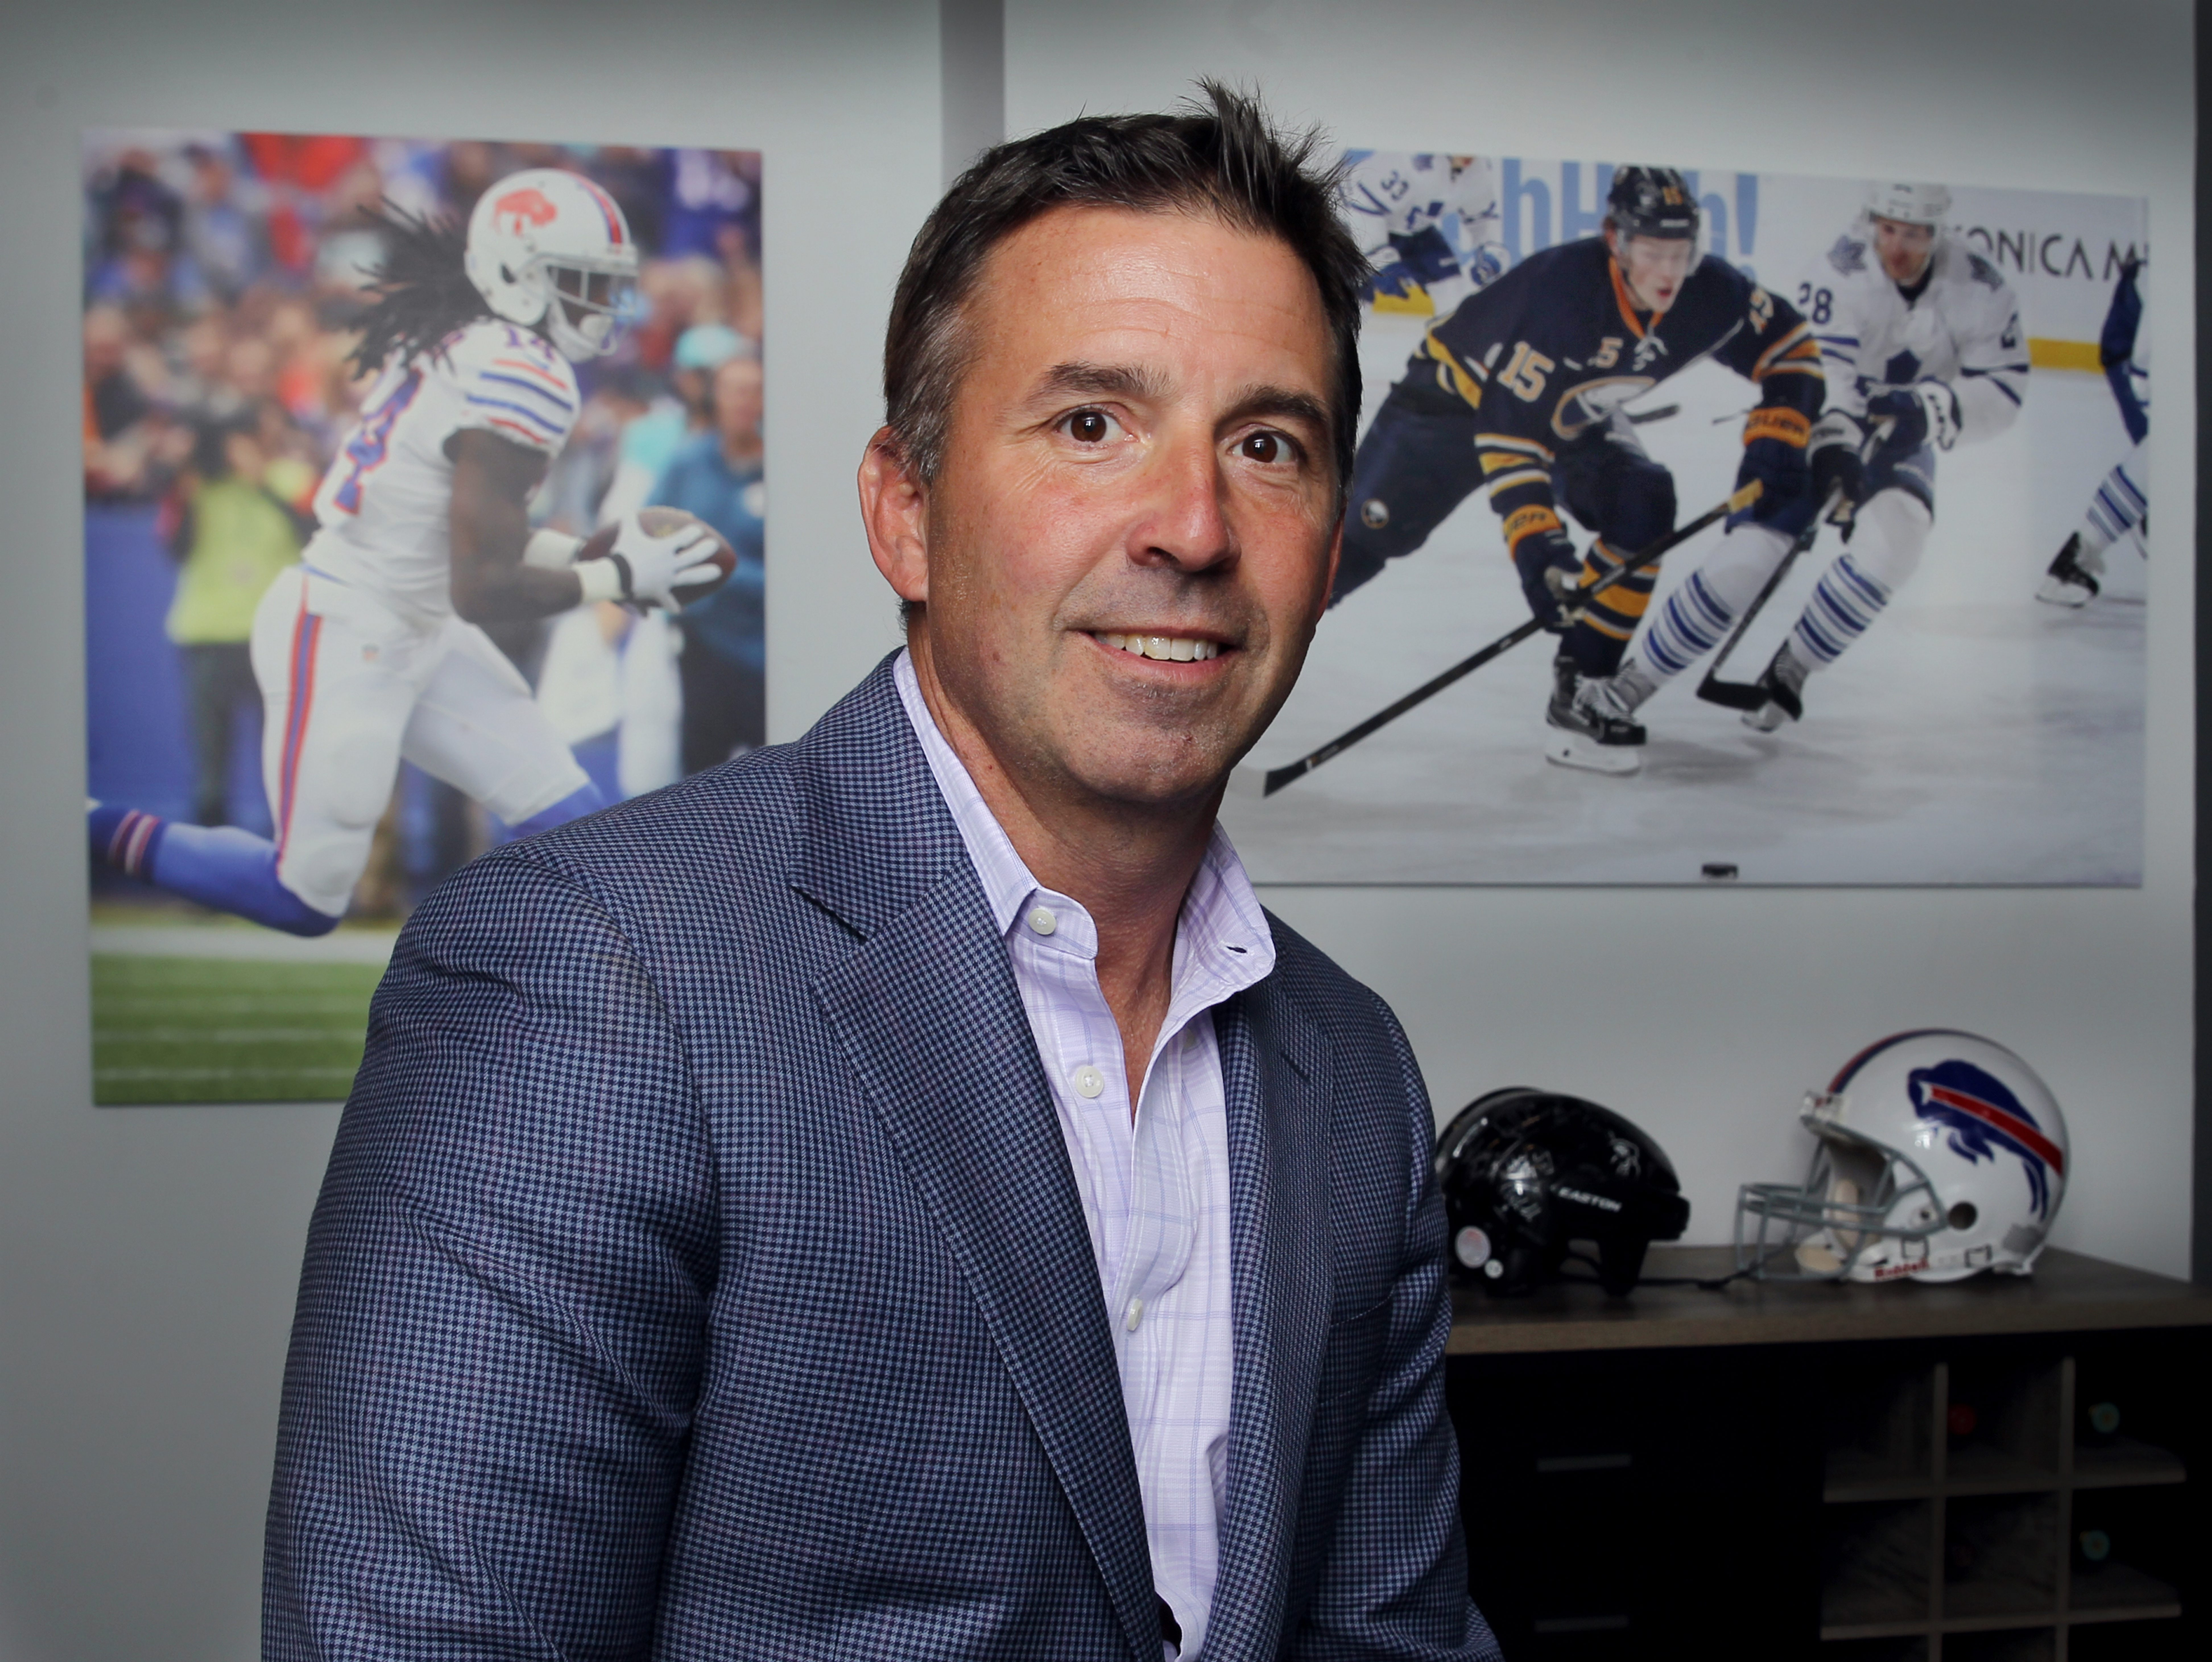 Russ Brandon's office has photos of two of Buffalo's biggest sports stars, the Bills' Sammy Watkins and the Sabres' Jack Eichel. (James P. McCoy/Buffalo News)